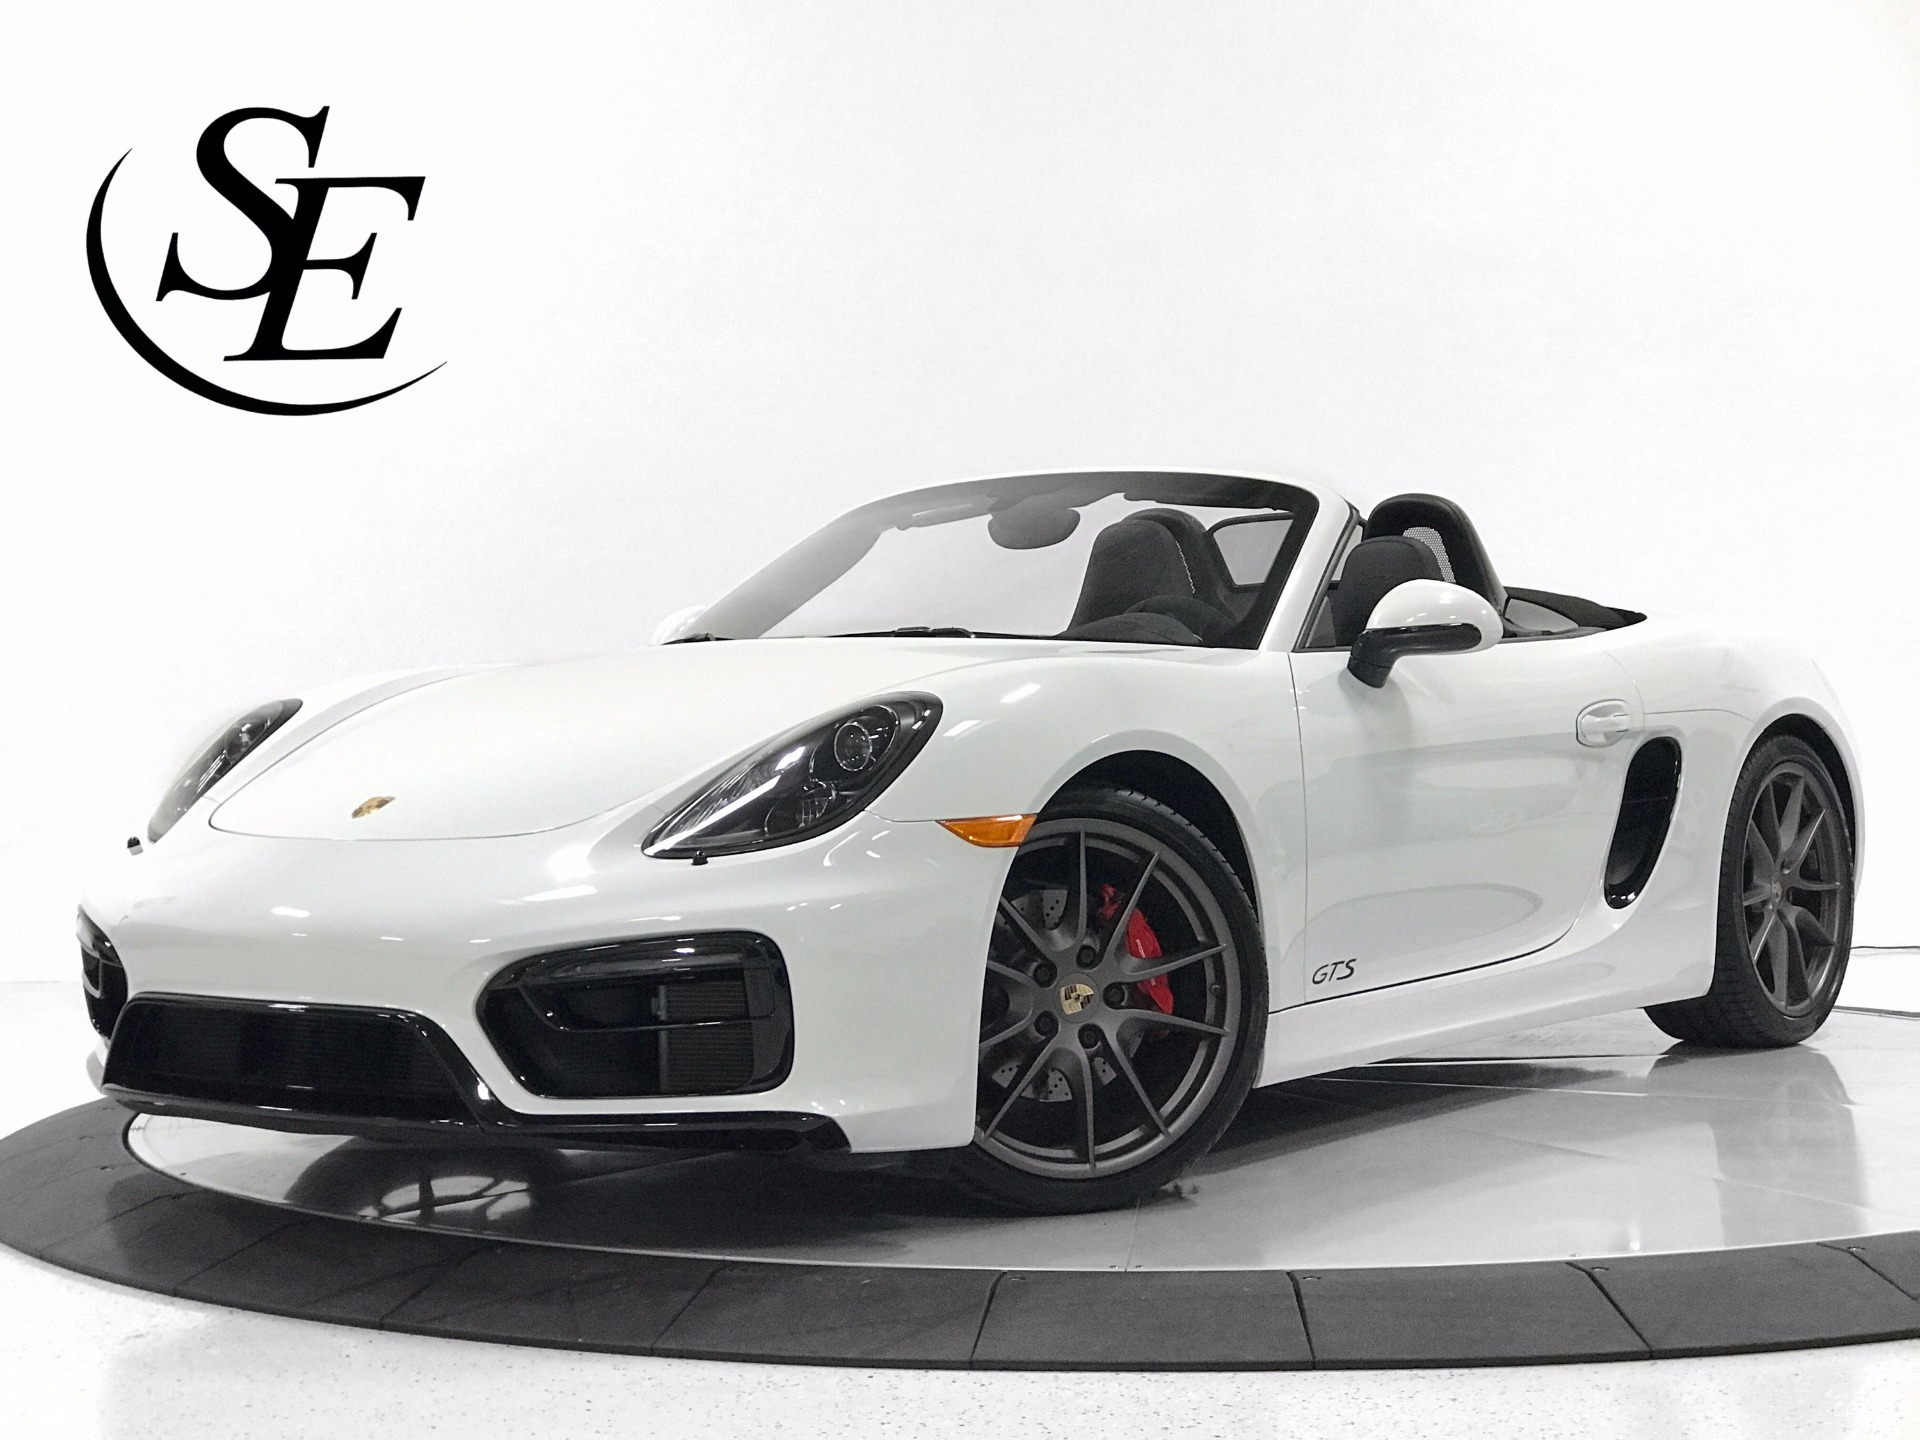 2015 Porsche Boxster Gts 2dr Convertible Stock 22503 For